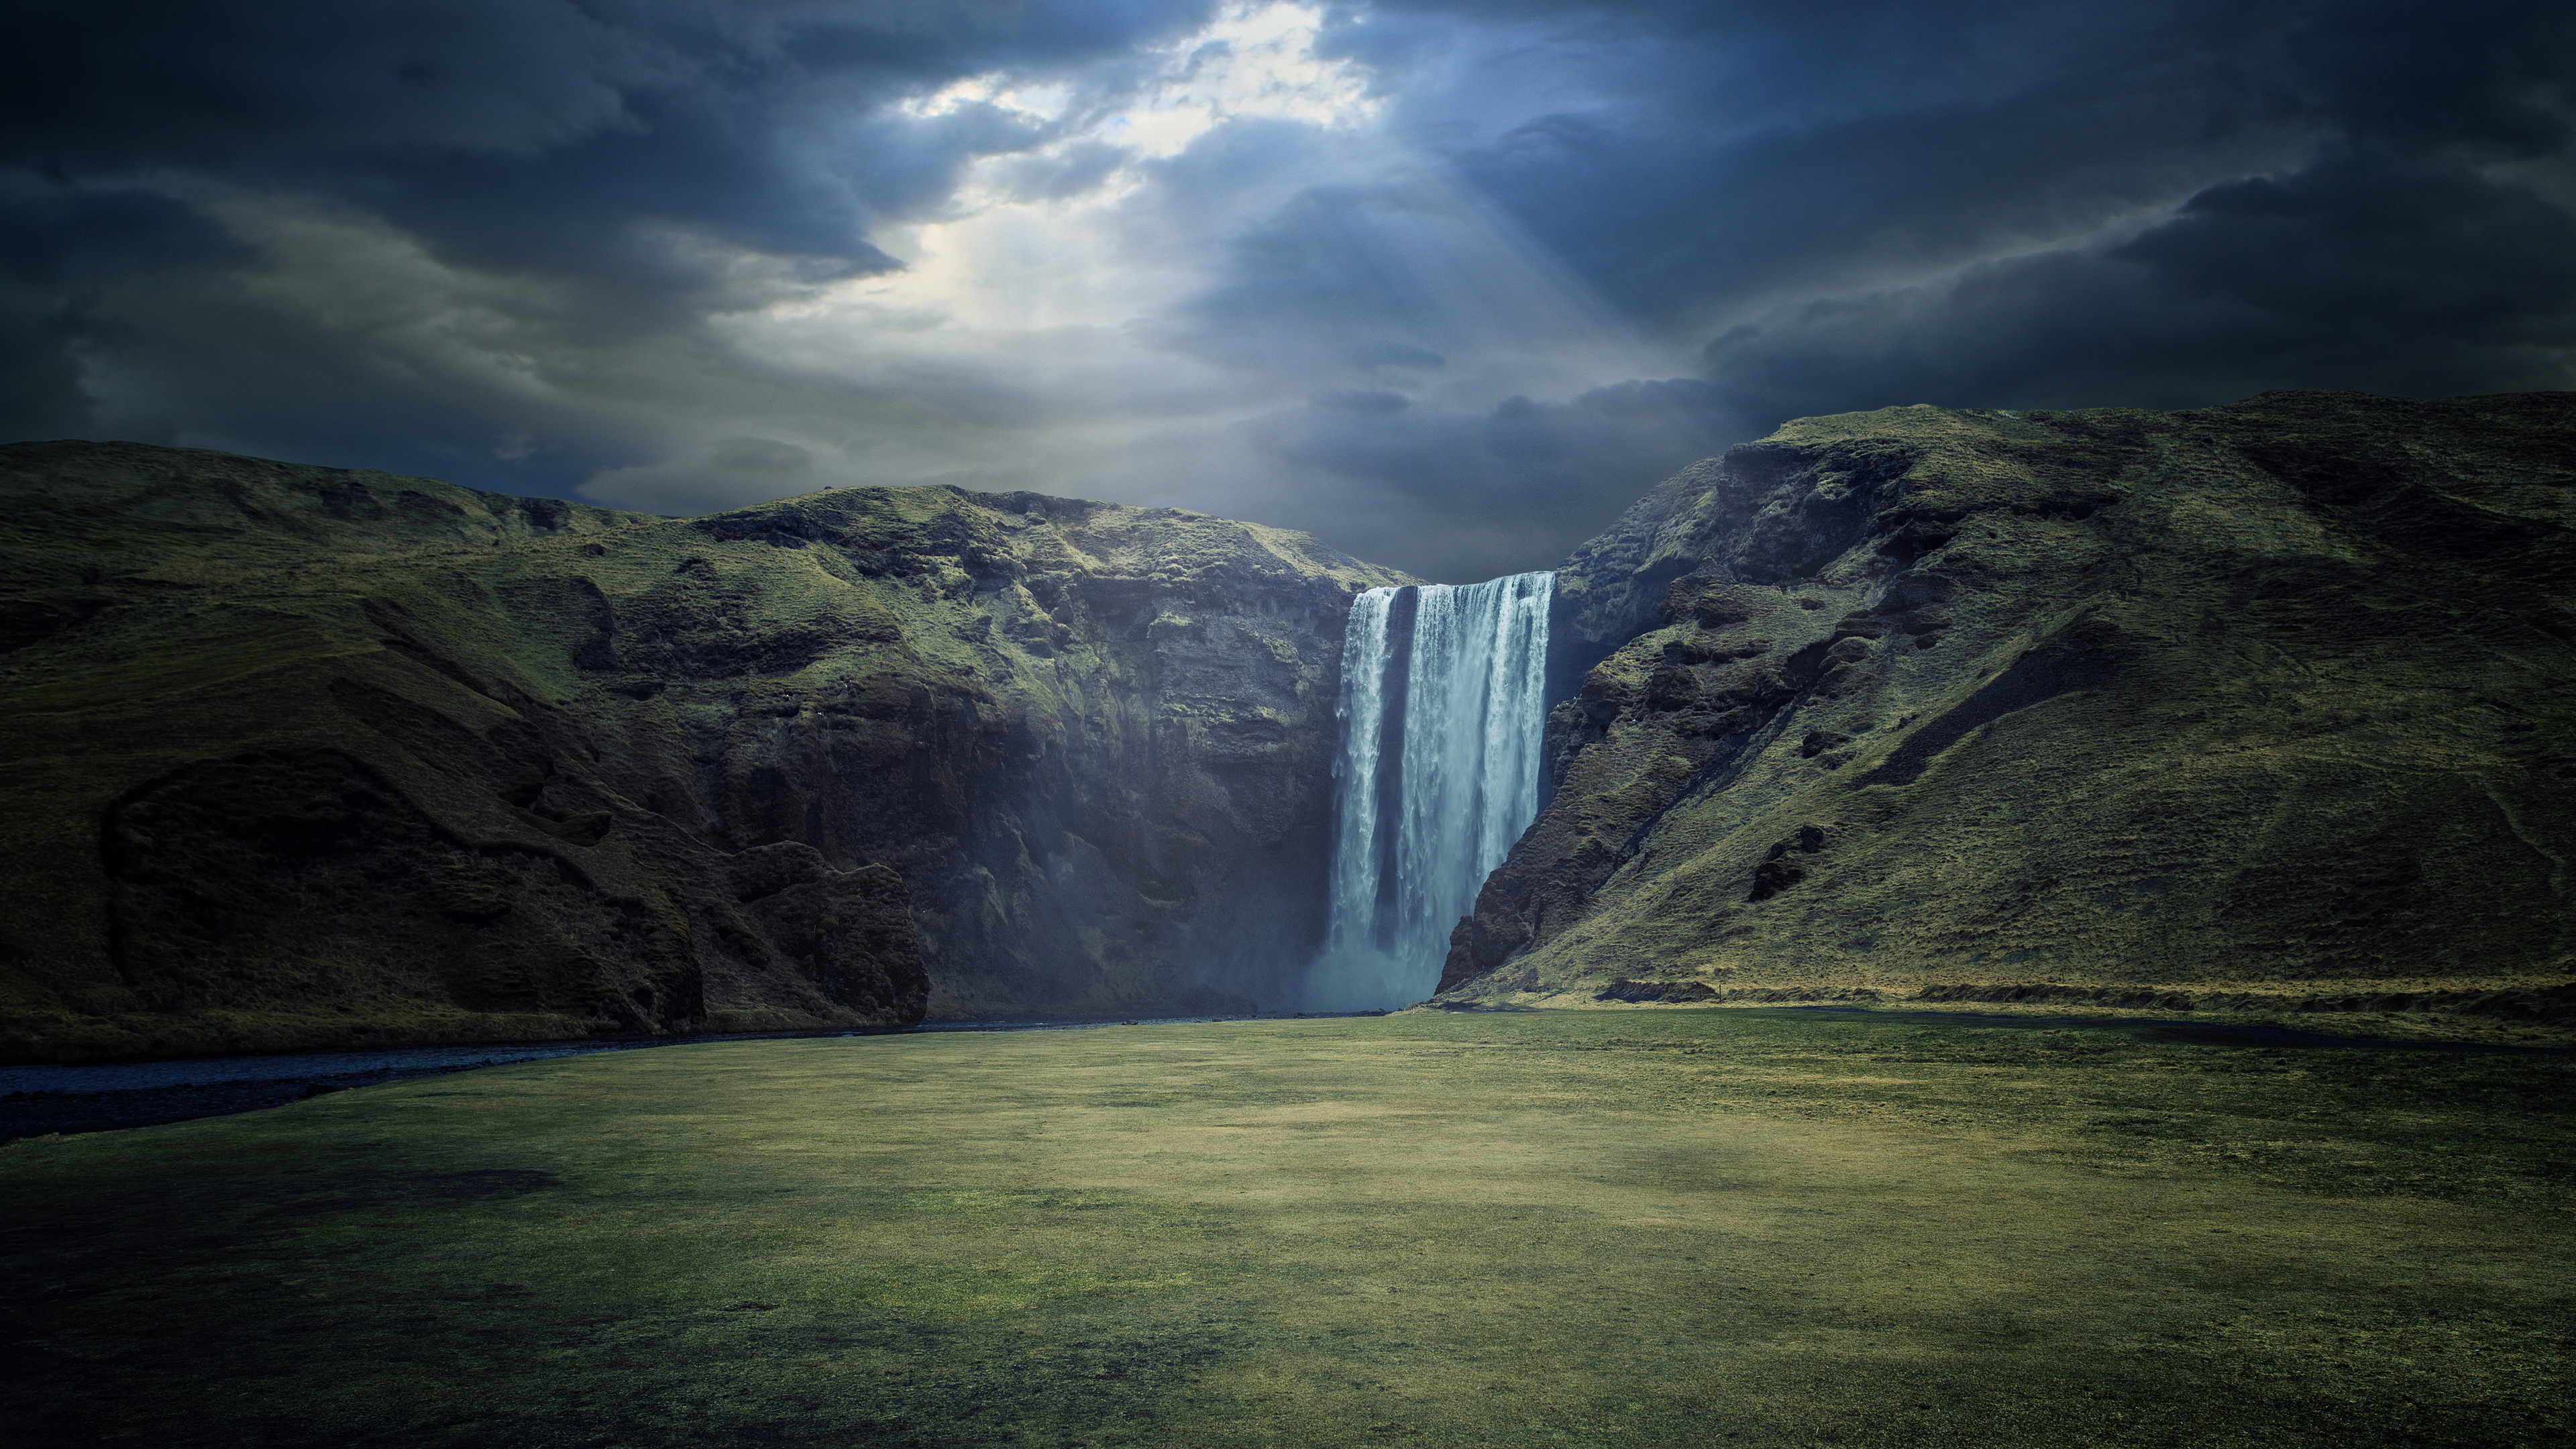 General 3840x2160 landscape nature waterfall river clouds sun rays Iceland photography